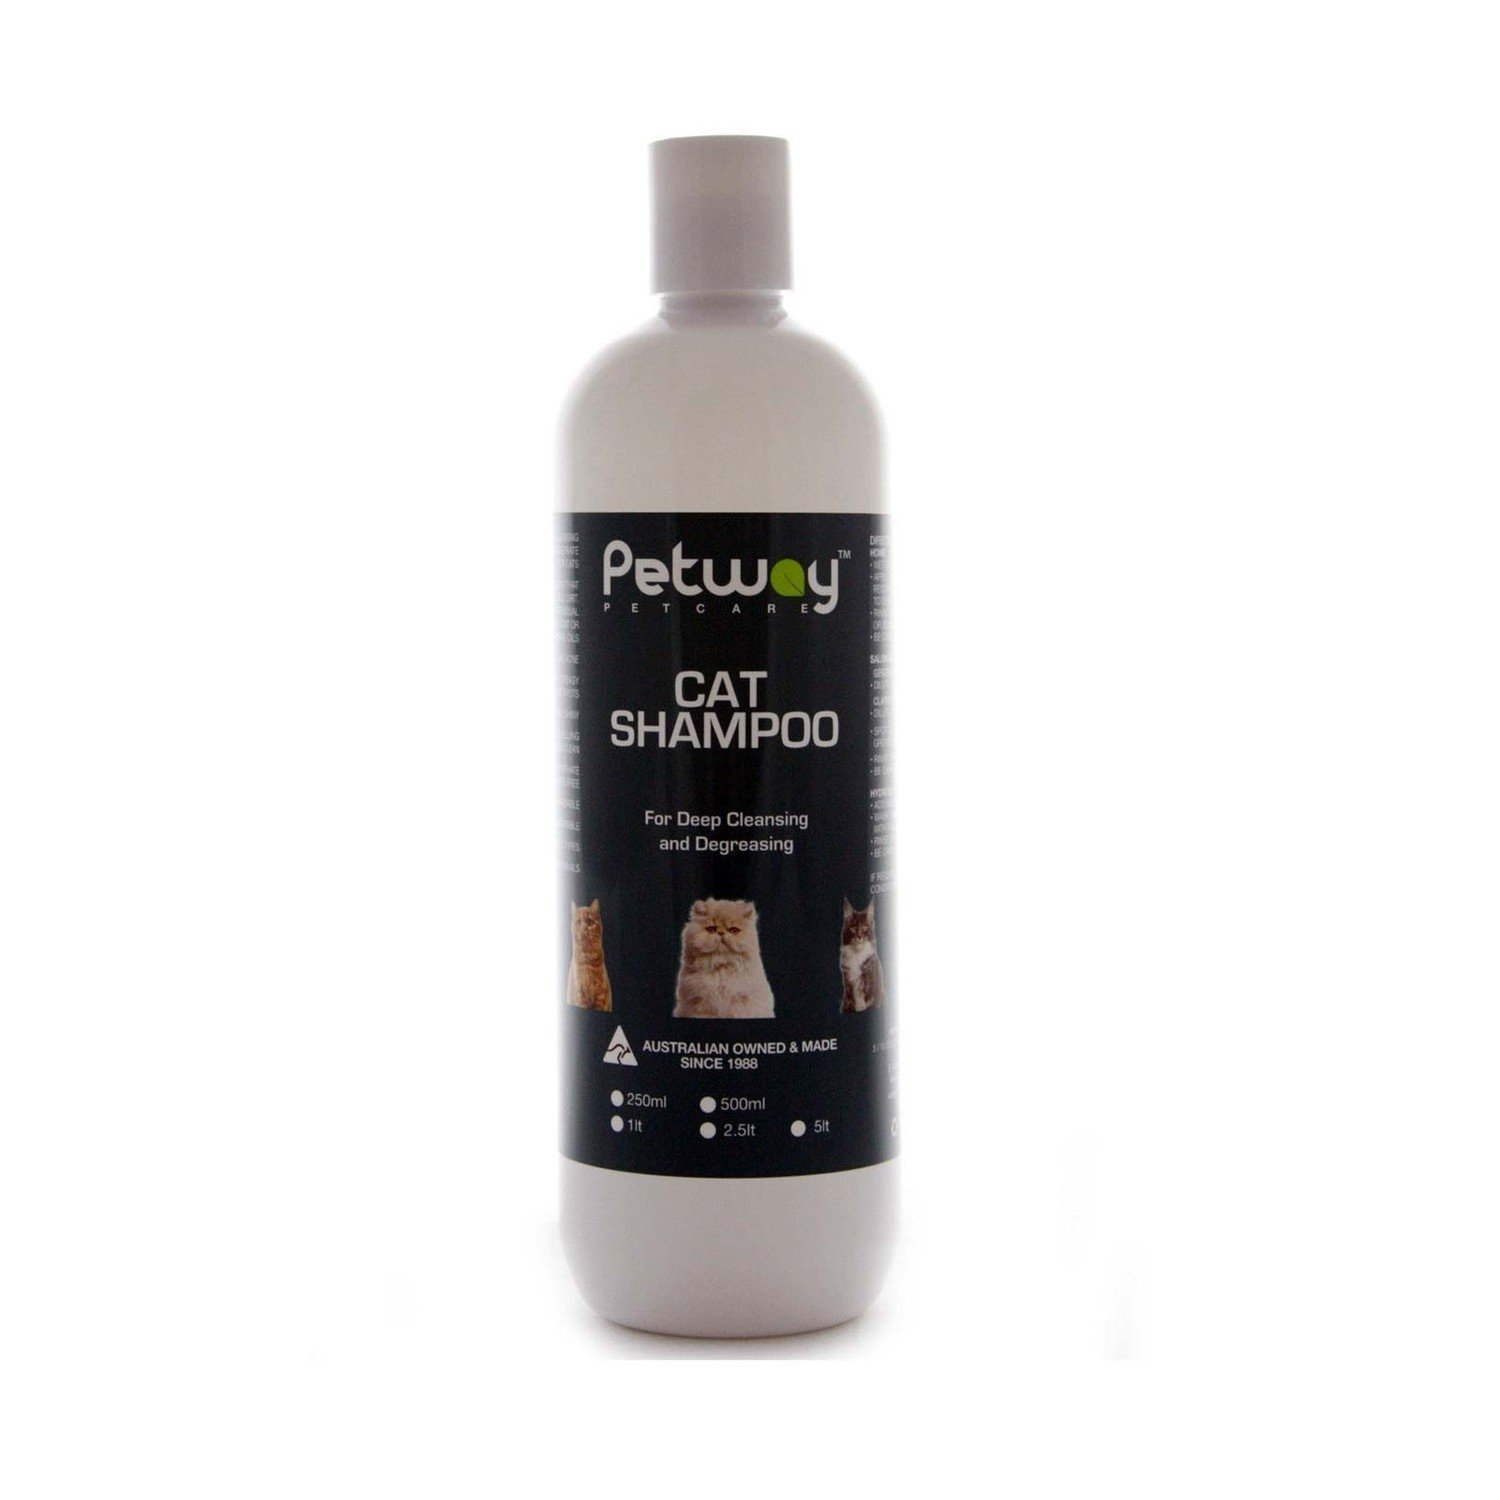 Cat Shampoo - Petway Petcare 250ml